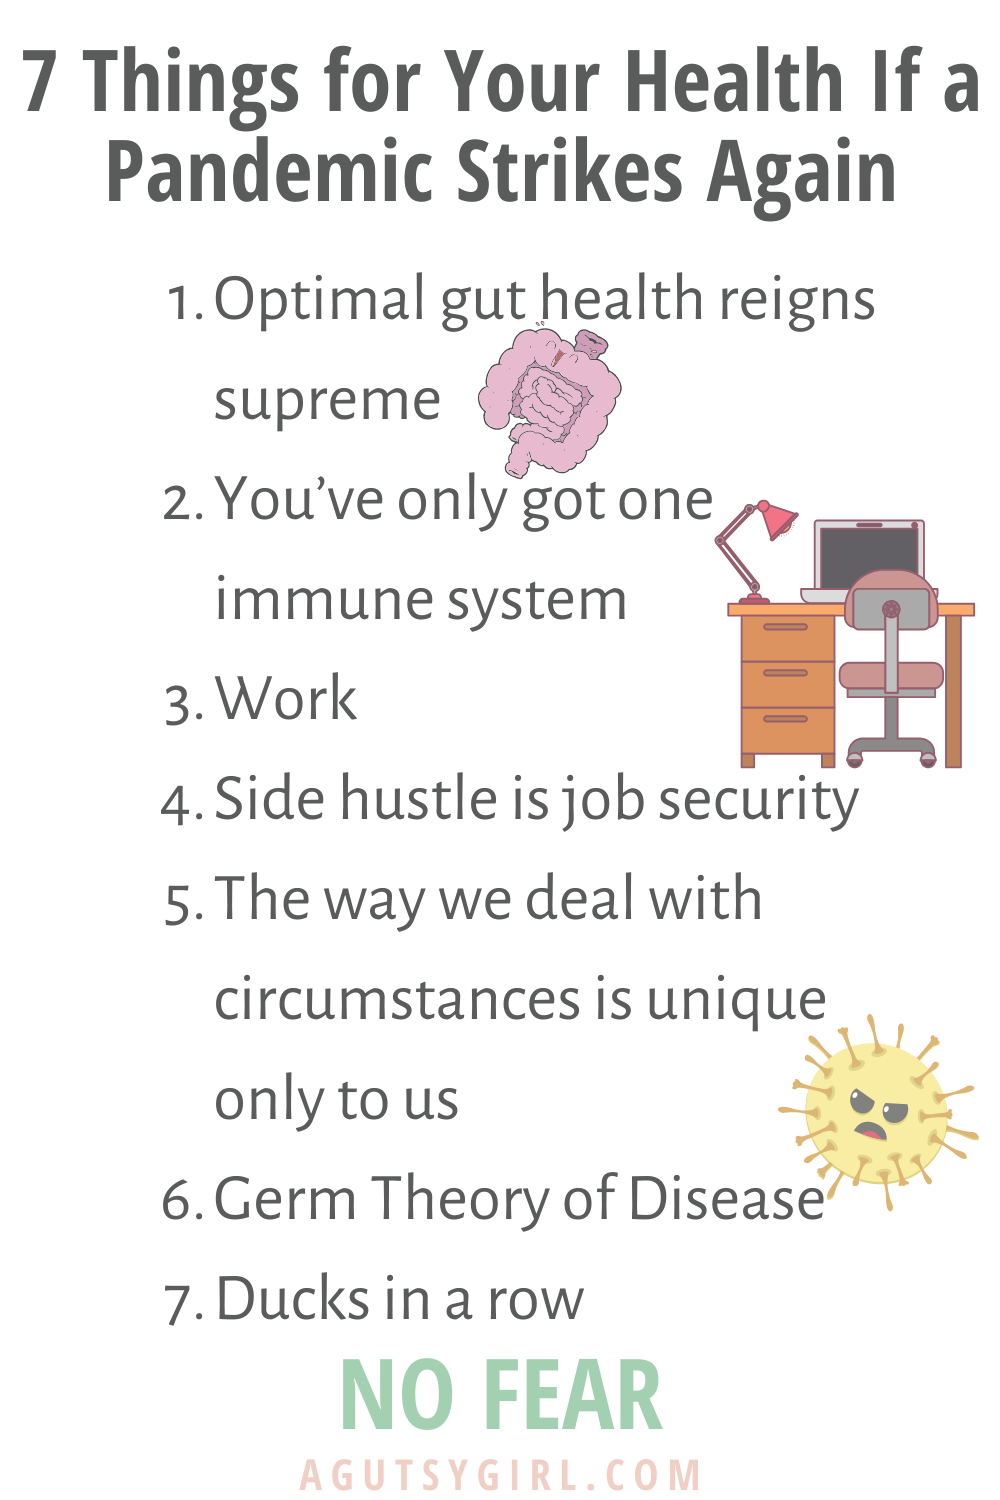 If a Pandemic Strikes Again 7 things for your health agutsygirl.com #healthyliving #immunesystem #guthealth